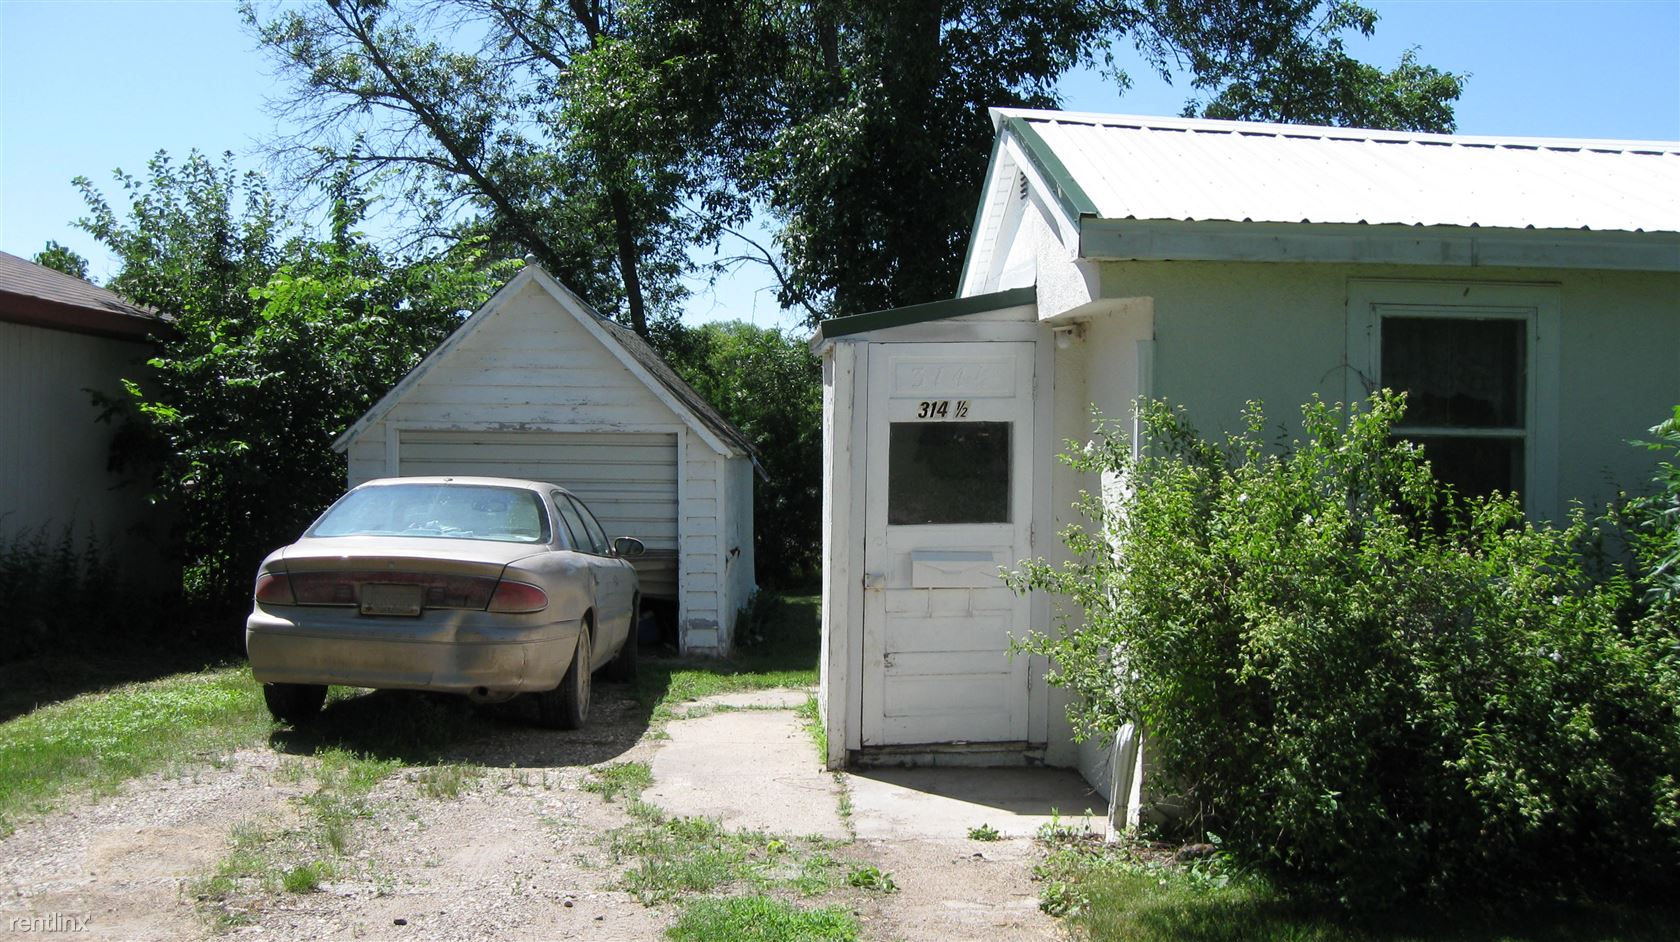 314 1/2 4th Ave SW, Jamestown, ND - 500 USD/ month